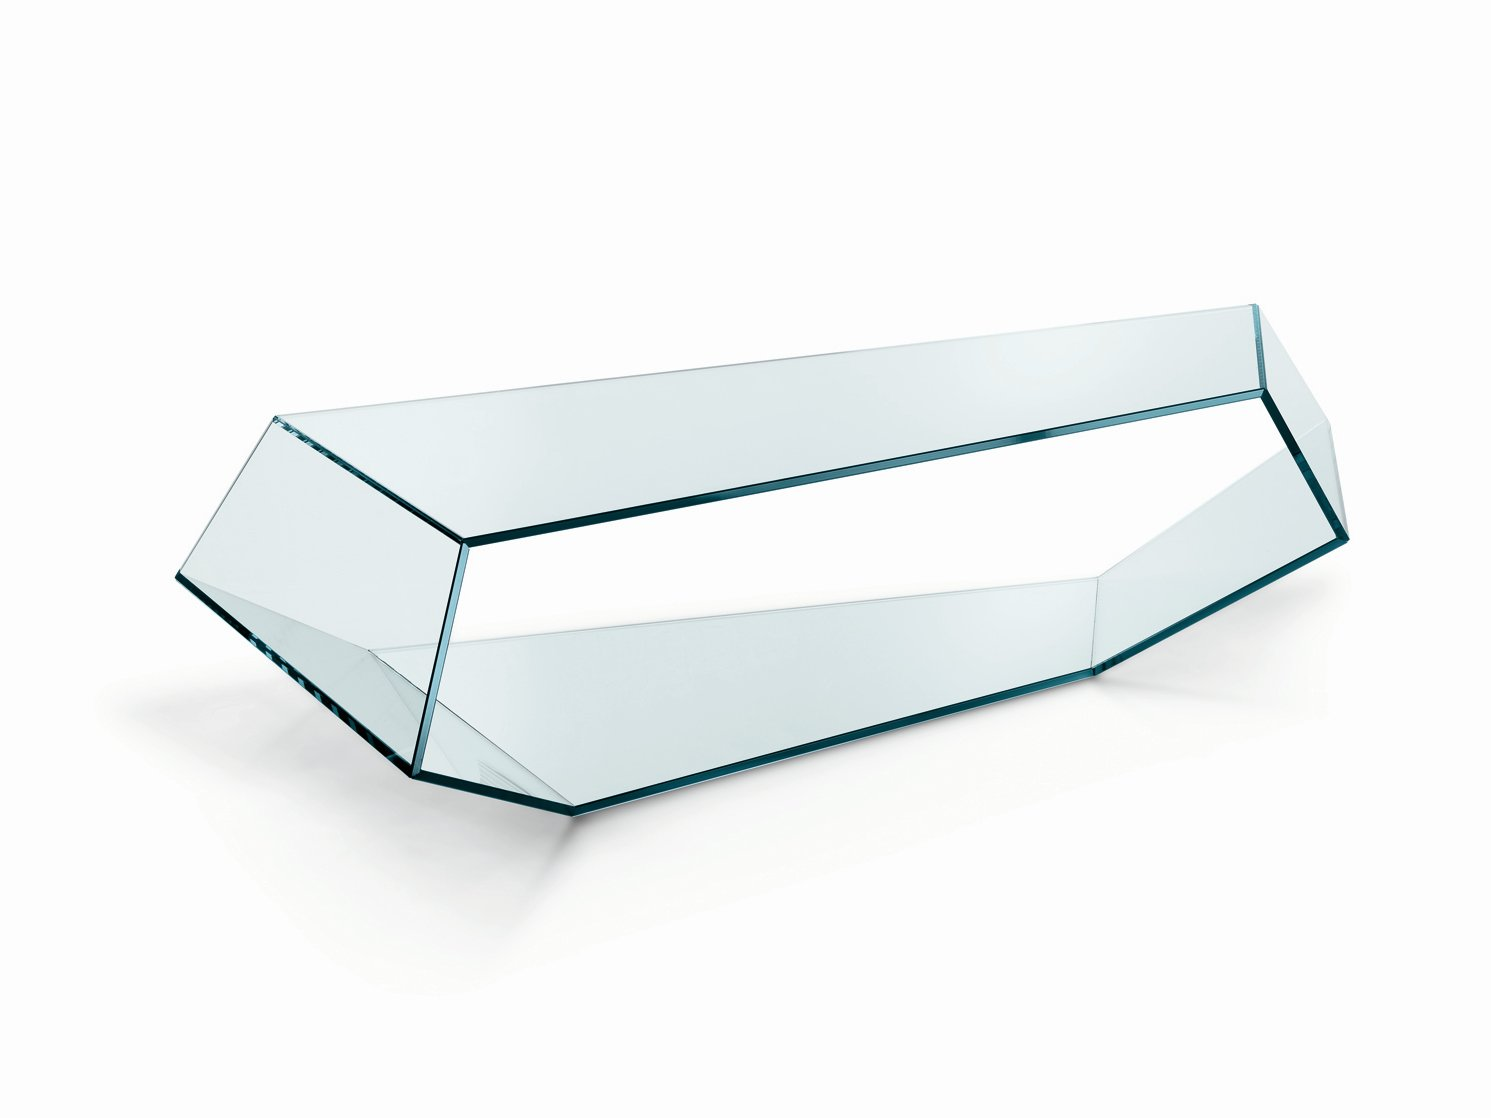 Table basse en verre dekon 2 by t d tonelli design design for Table basse verre design